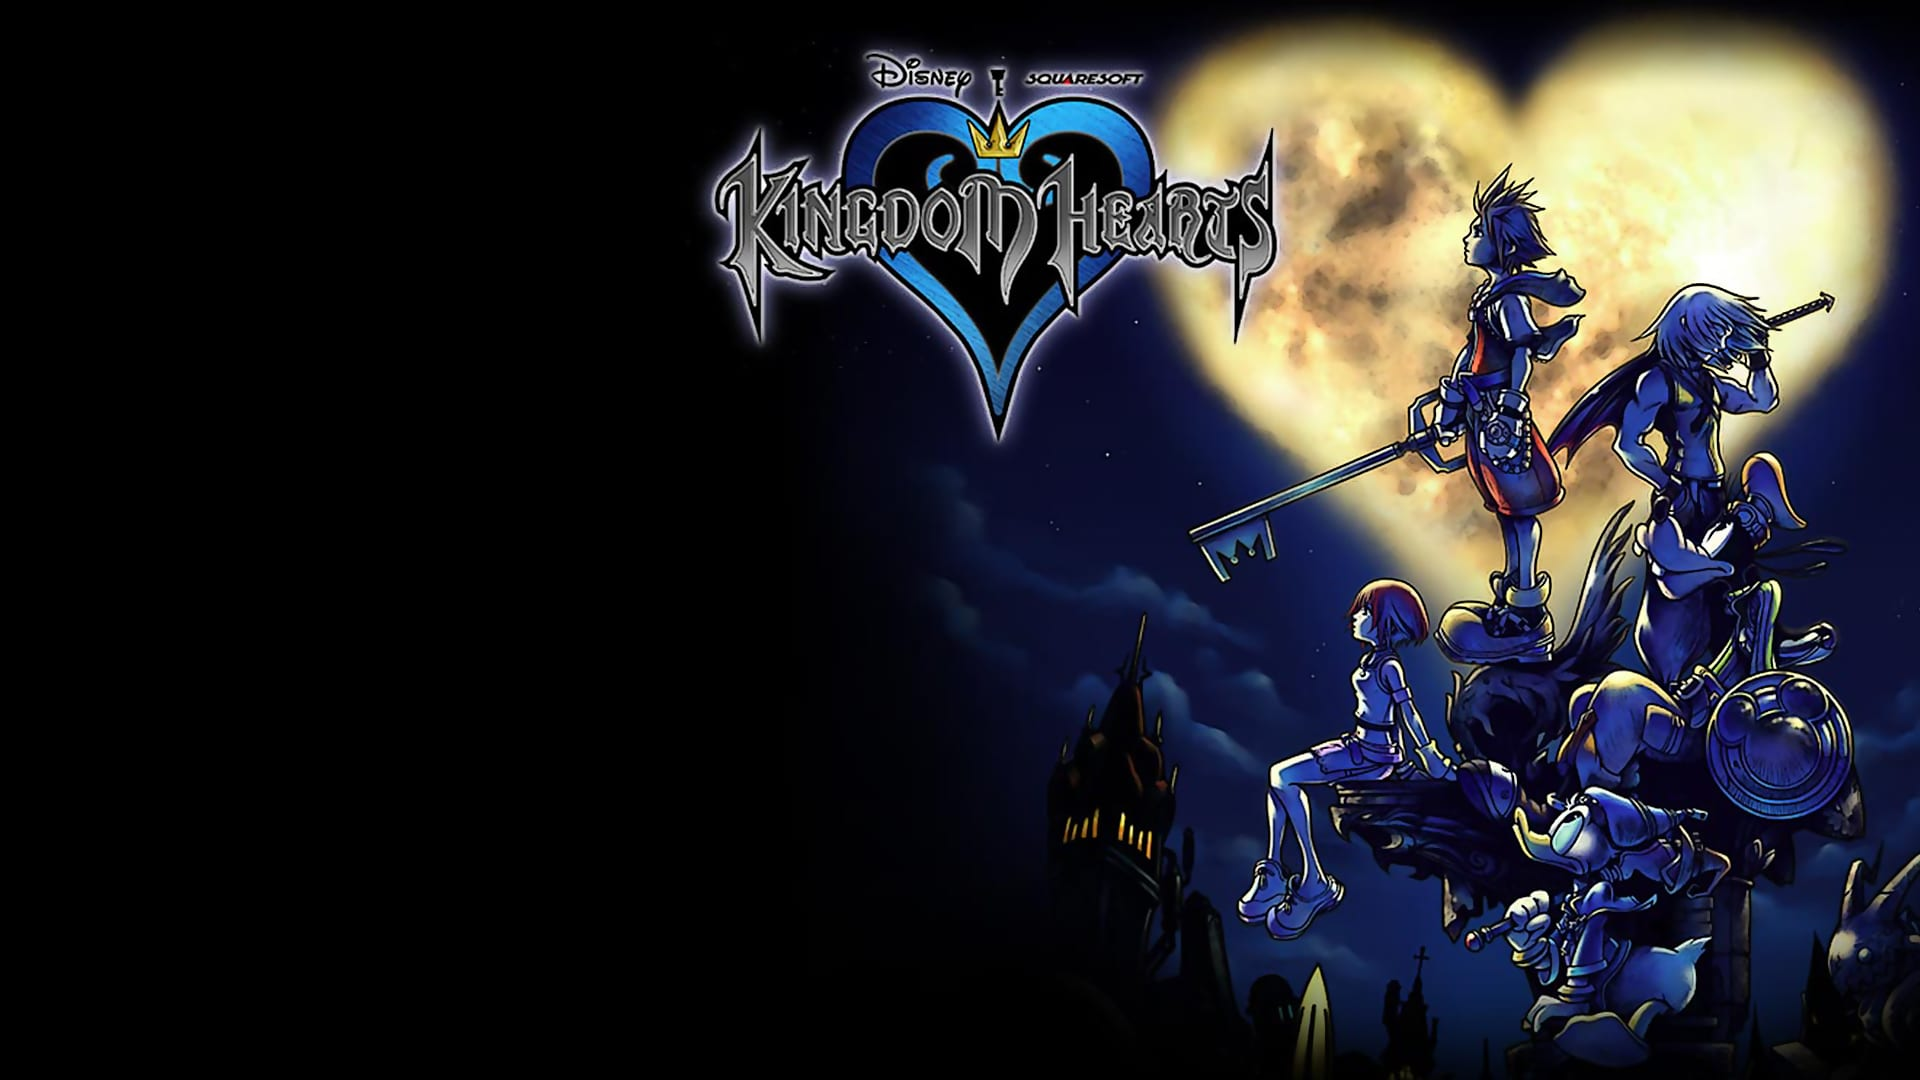 Kingdom Hearts HD 1.5 + 2.5 Remix Announced For The Playstation 4